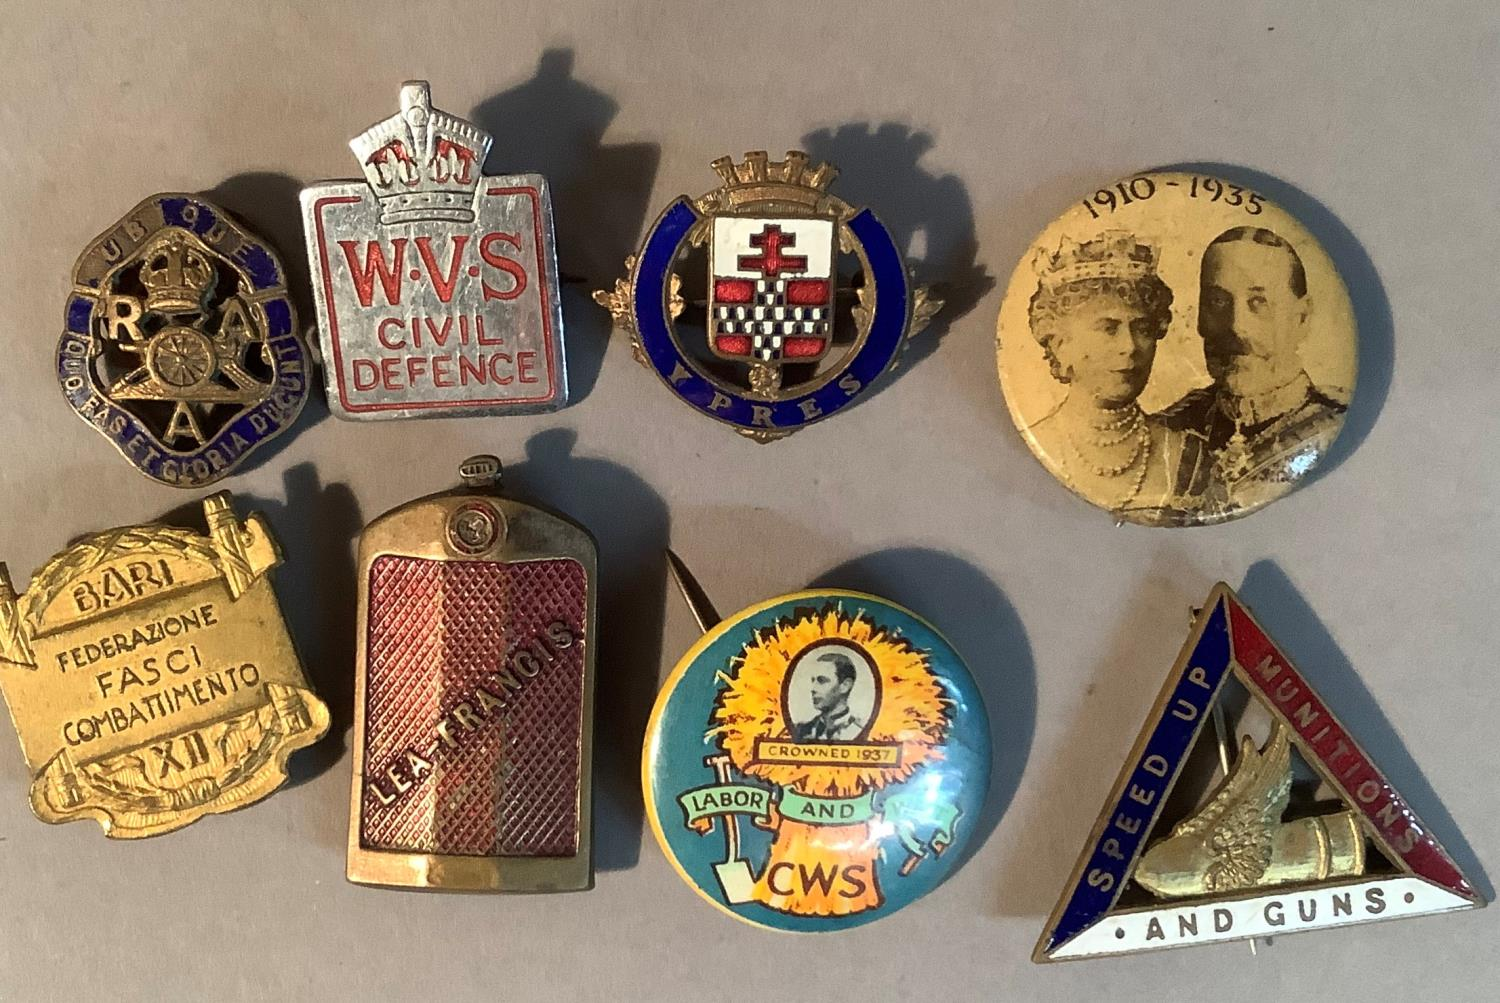 Eight various badges to include WVS Civil Defence, Lea-Francis, 1910-1935 Royal Badge, CWS Labour - Image 2 of 2